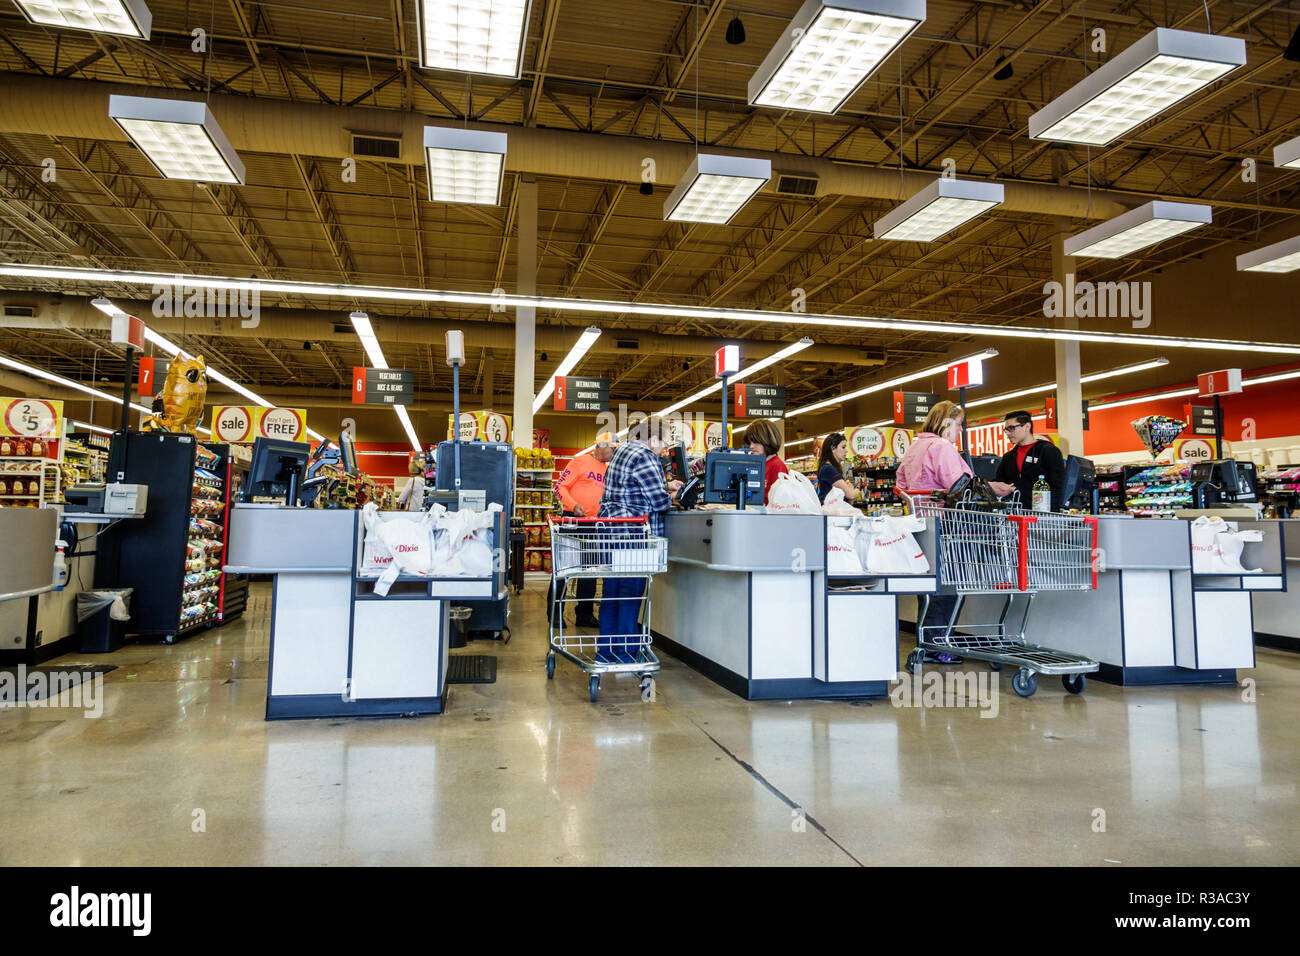 Miami Florida Winn-Dixie grocery store supermarket food inside checkout lines queues cashiers - Stock Image